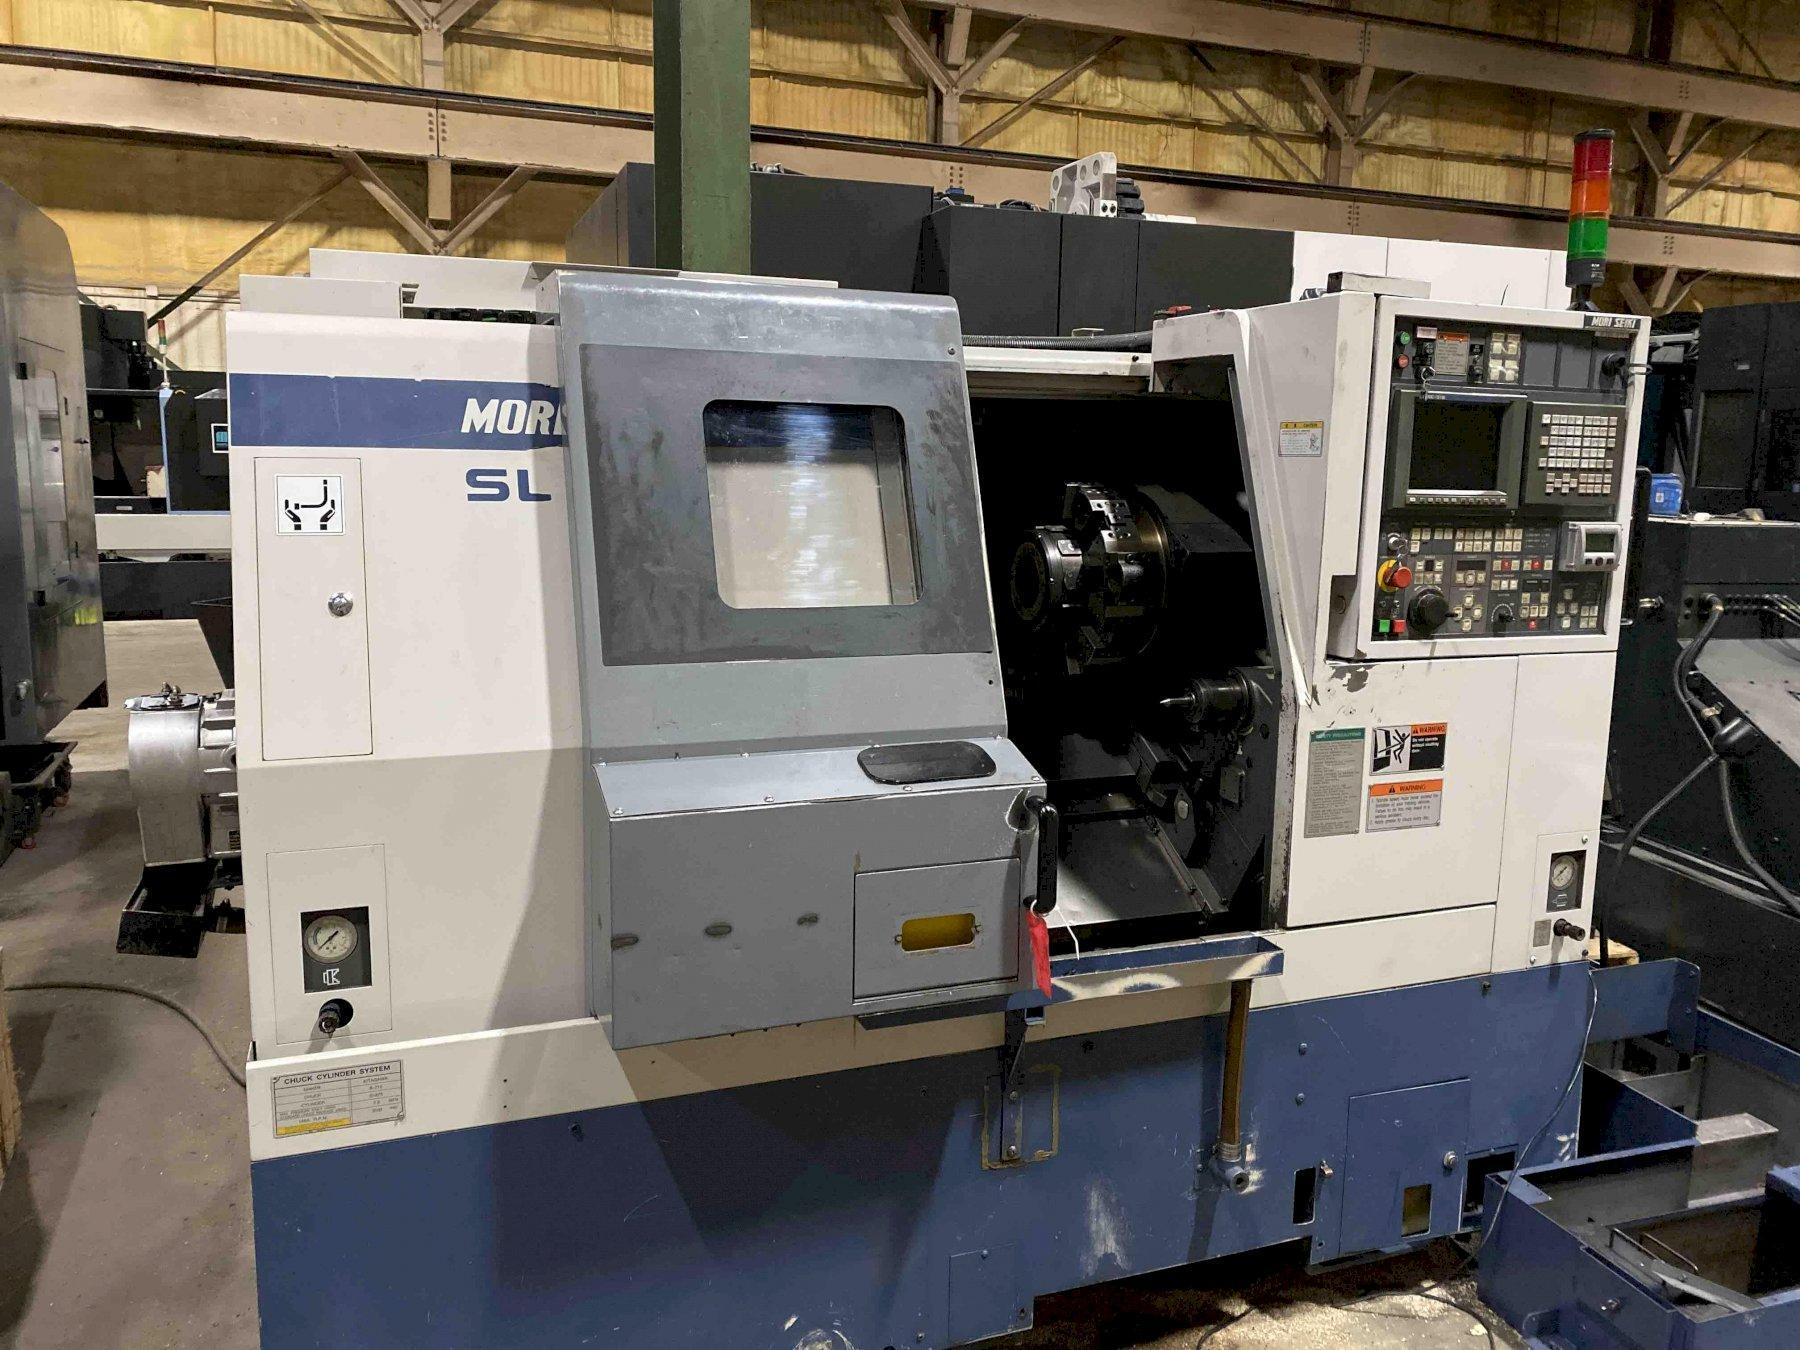 "Mori Seiki SL250BMC CNC Lathe, MSC-518, 10"" Chuck, 22.6"" Centers, 2.8"" Bar Capacity, Live Milling, Parts Catcher, 10 Position Turret, Chip Conveyor, Tooling, 1997"